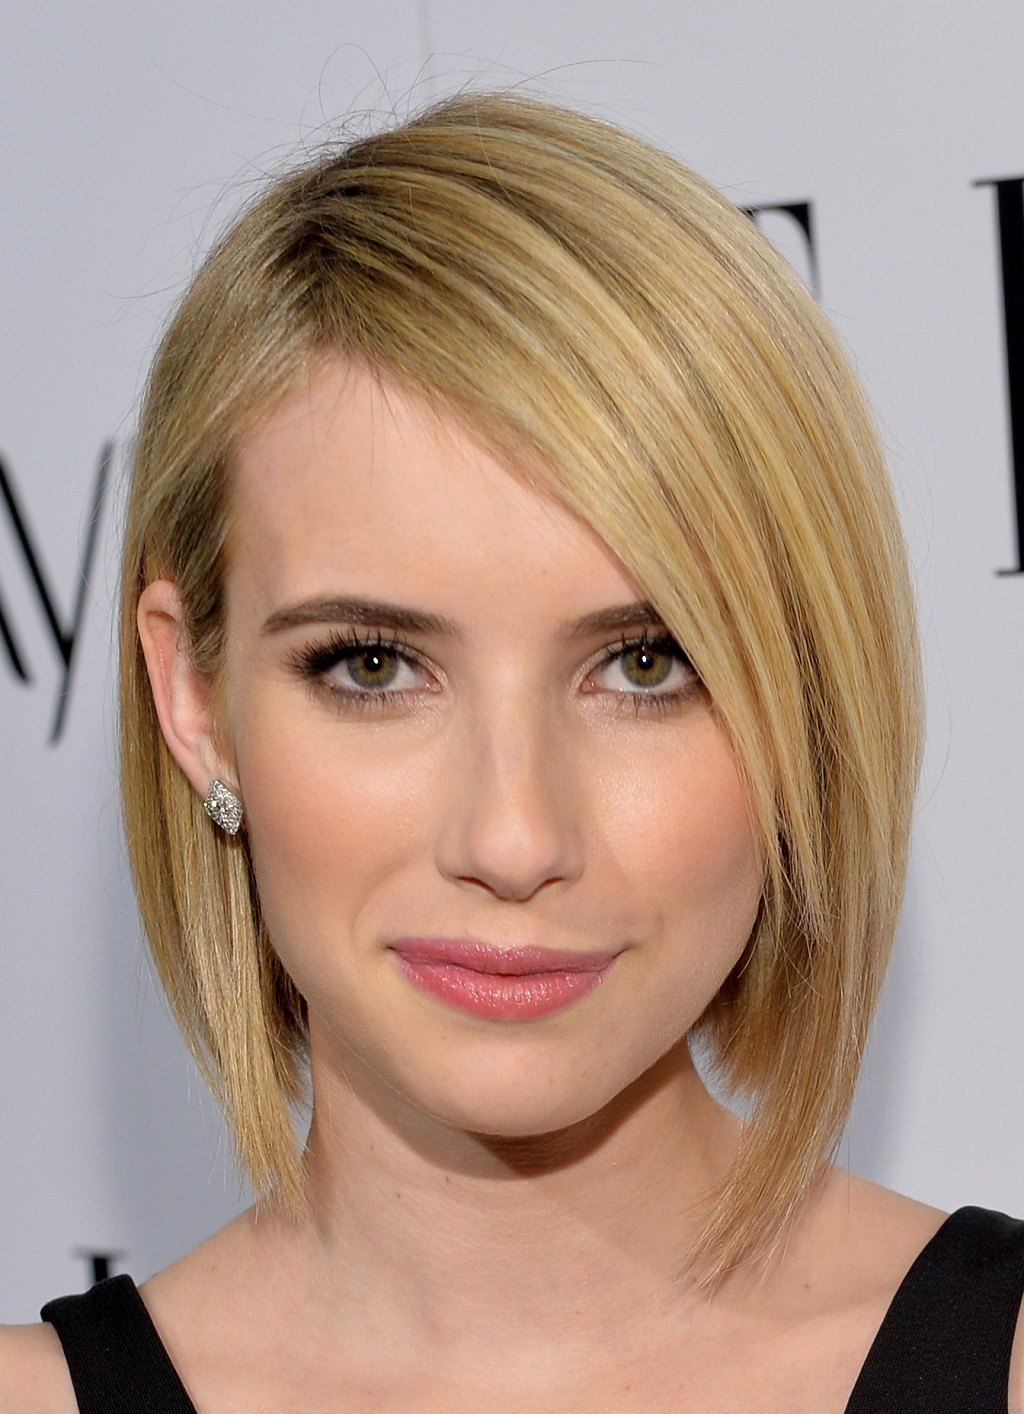 The 11 Best Hair Styles for Thin Hair